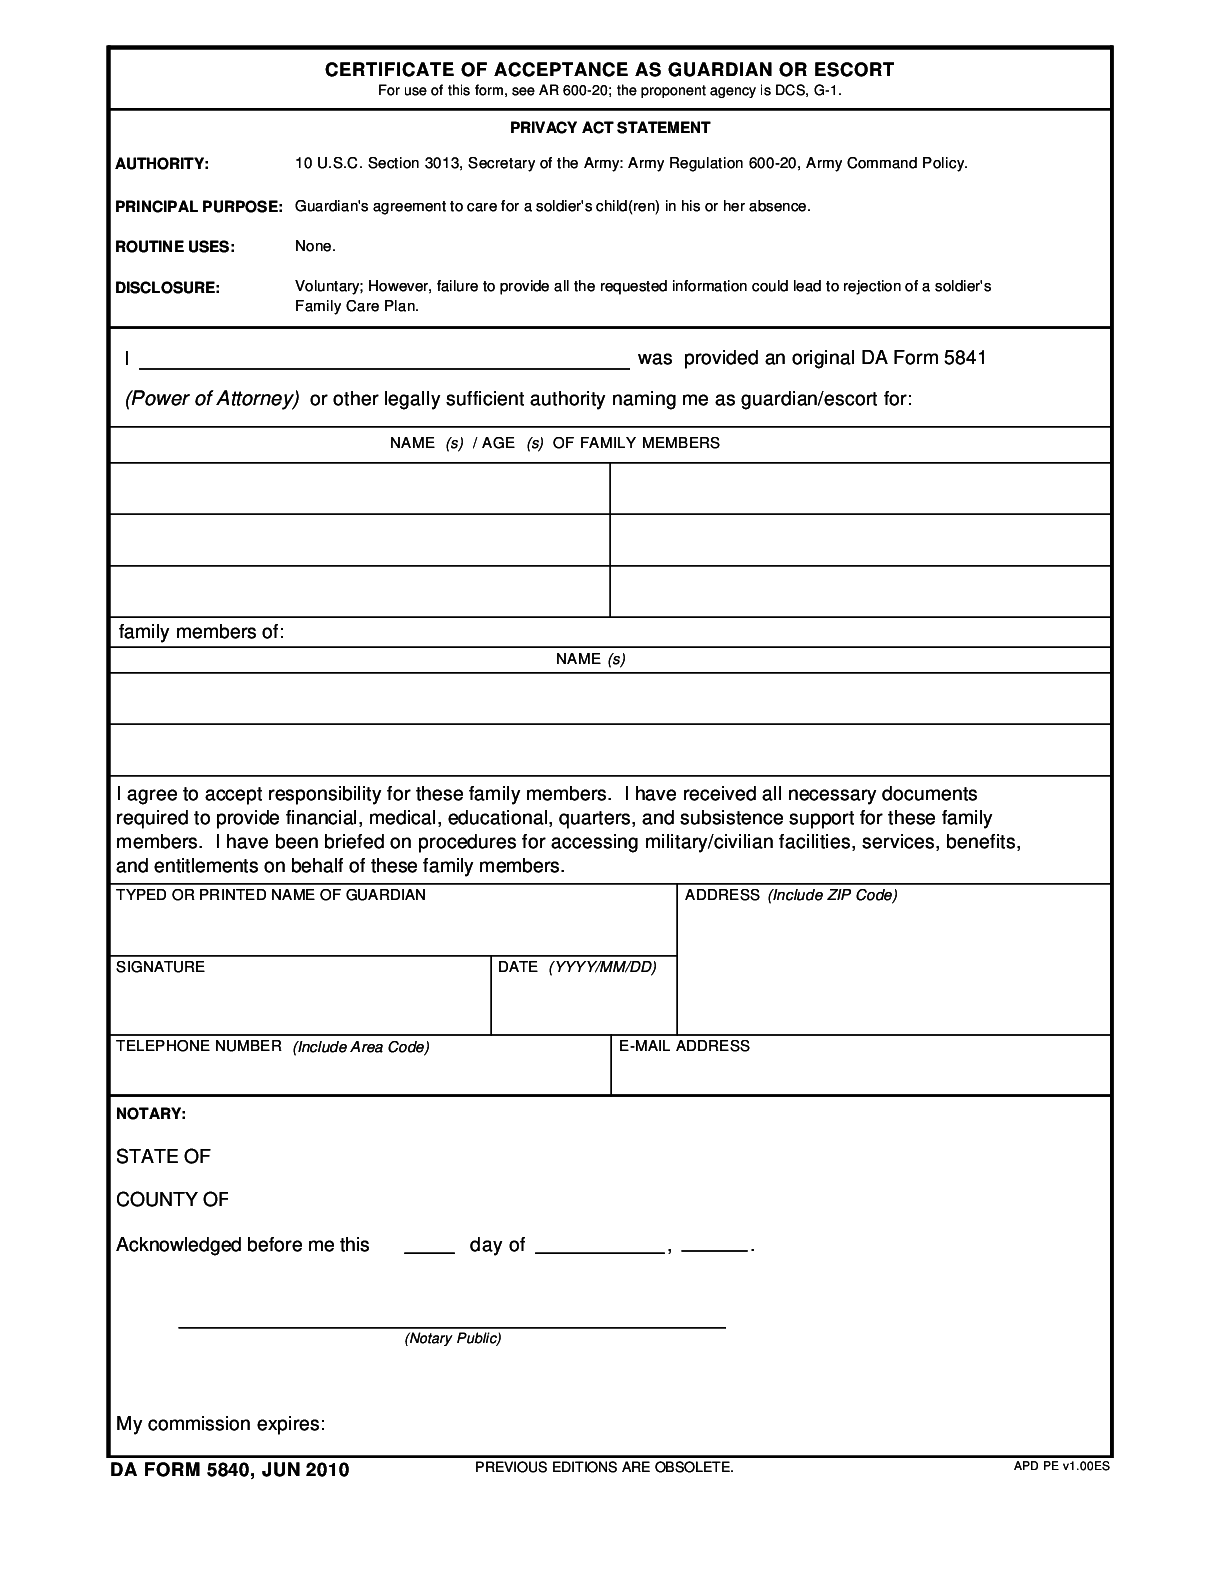 DA-Form-5840-R Form – Fillable Pdf Template – ✅ Download Here!